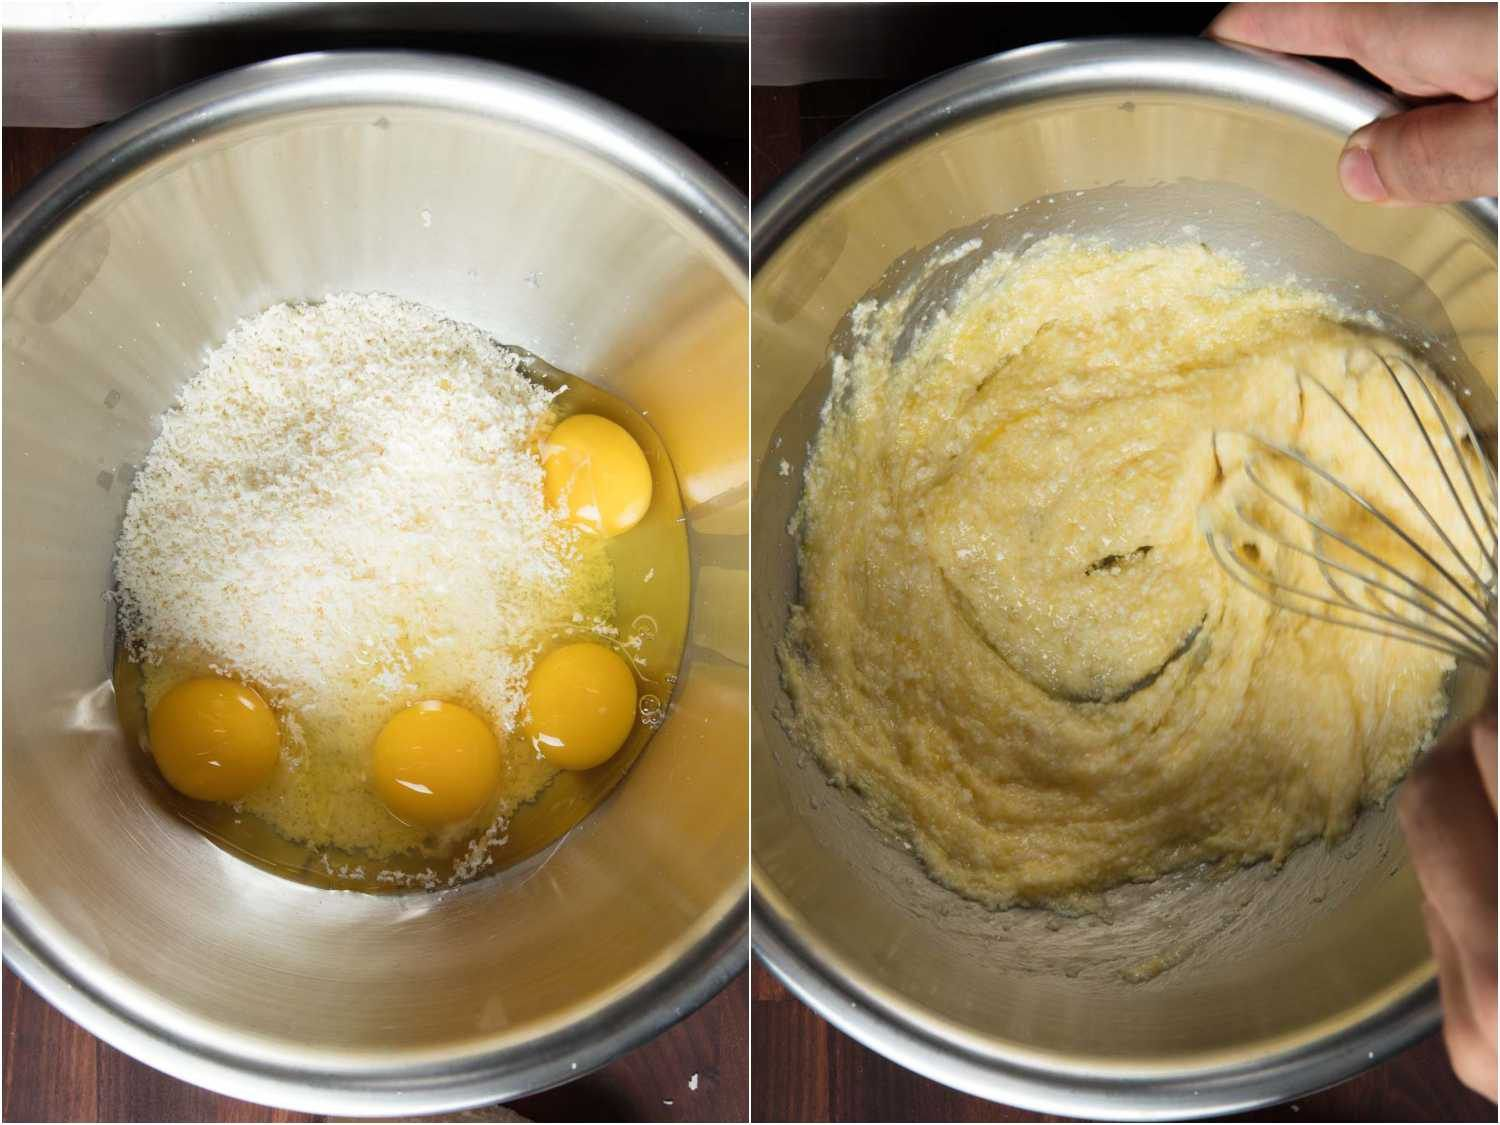 Whisking eggs and parmesan cheese together for stracciatella soup